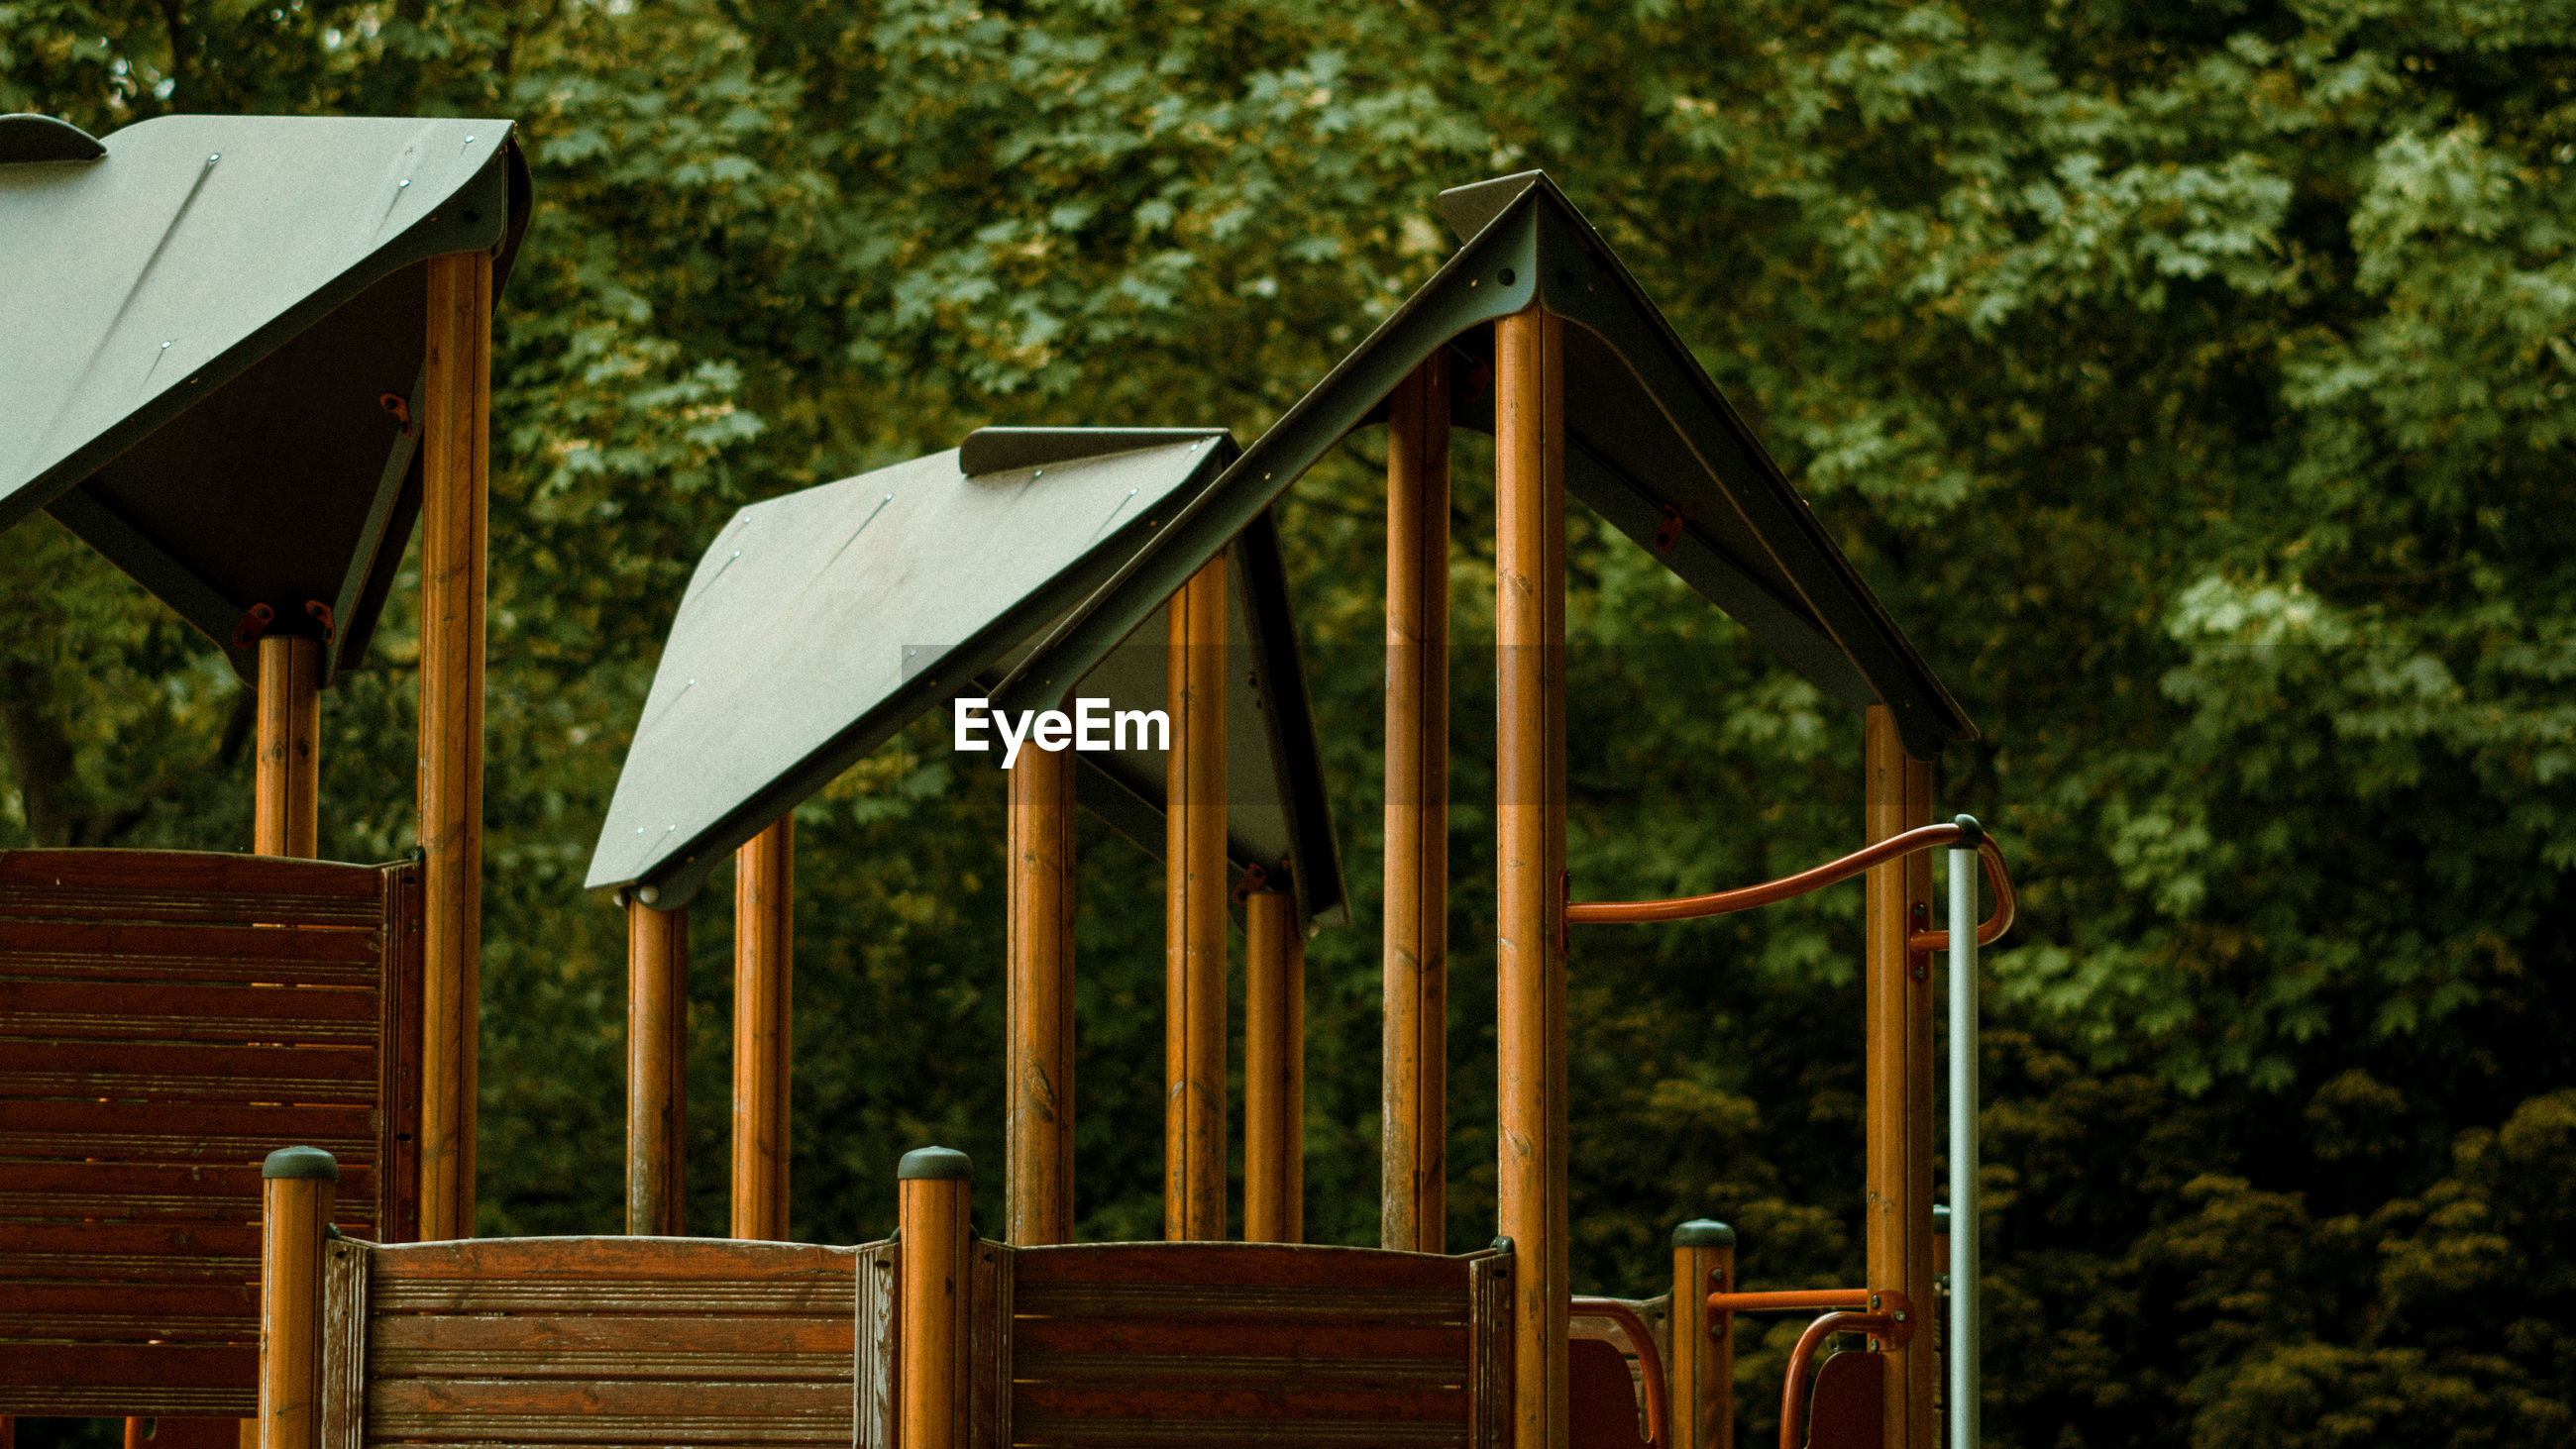 Outdoor play equipment at playground against trees